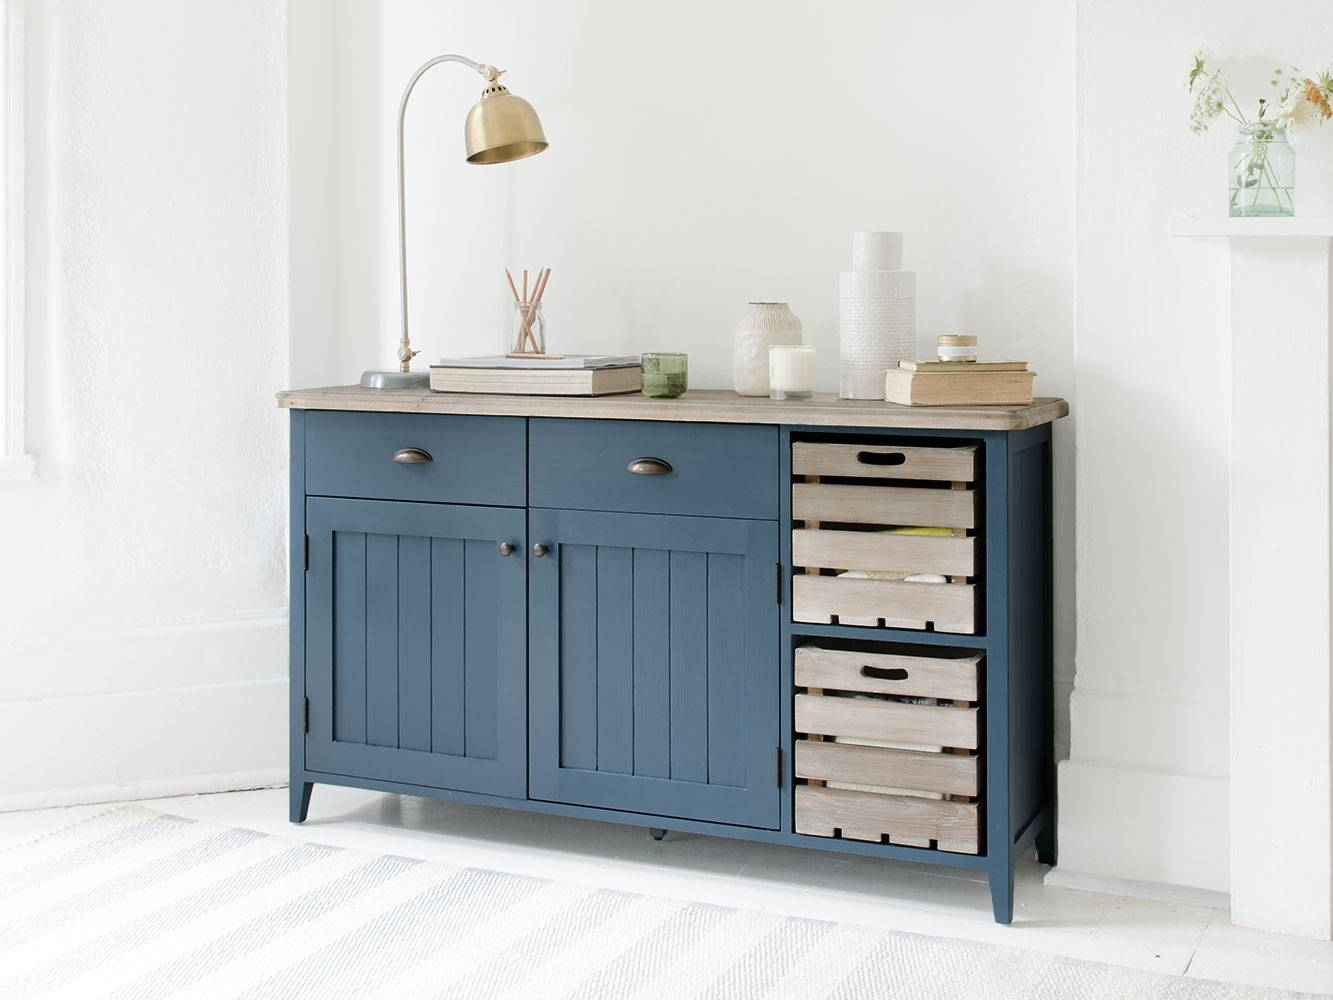 Cidre Sideboard In Inky Blue | Painted Sideboard | Loaf Throughout Best And Newest Painted Sideboards (#3 of 15)